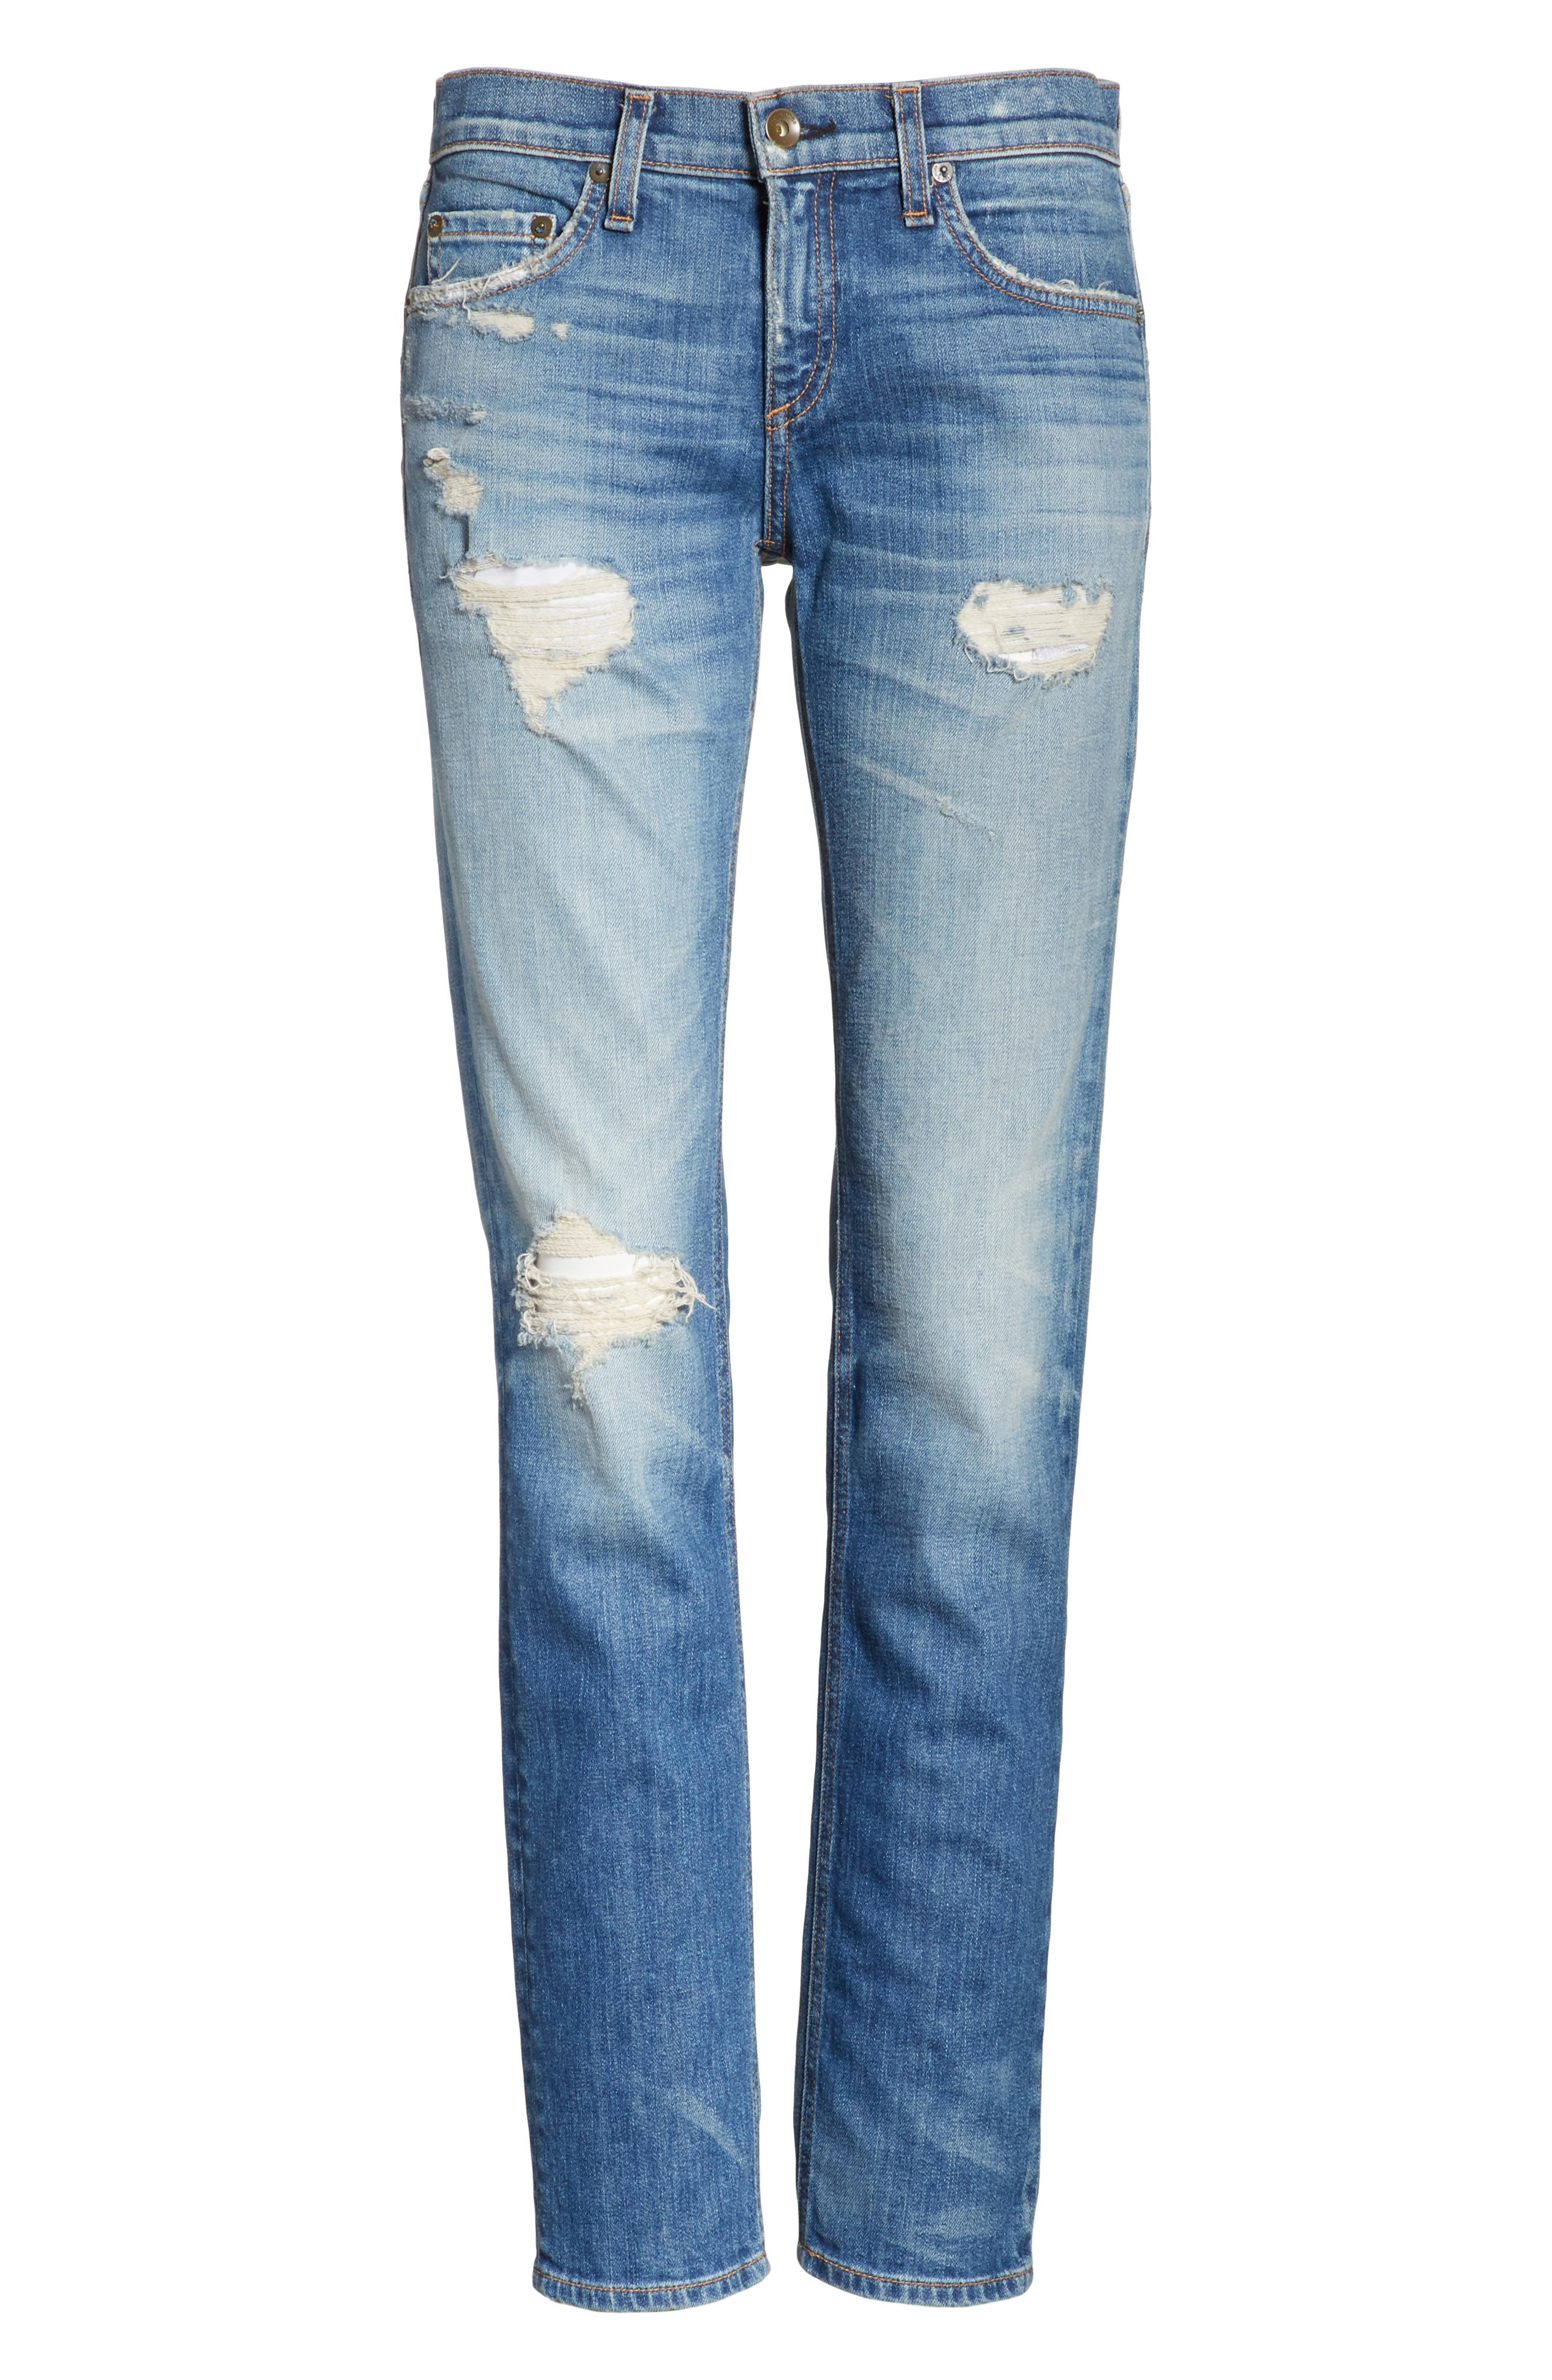 Dre Slim Boyfriend Jeans,                             Alternate thumbnail 6, color,                             420